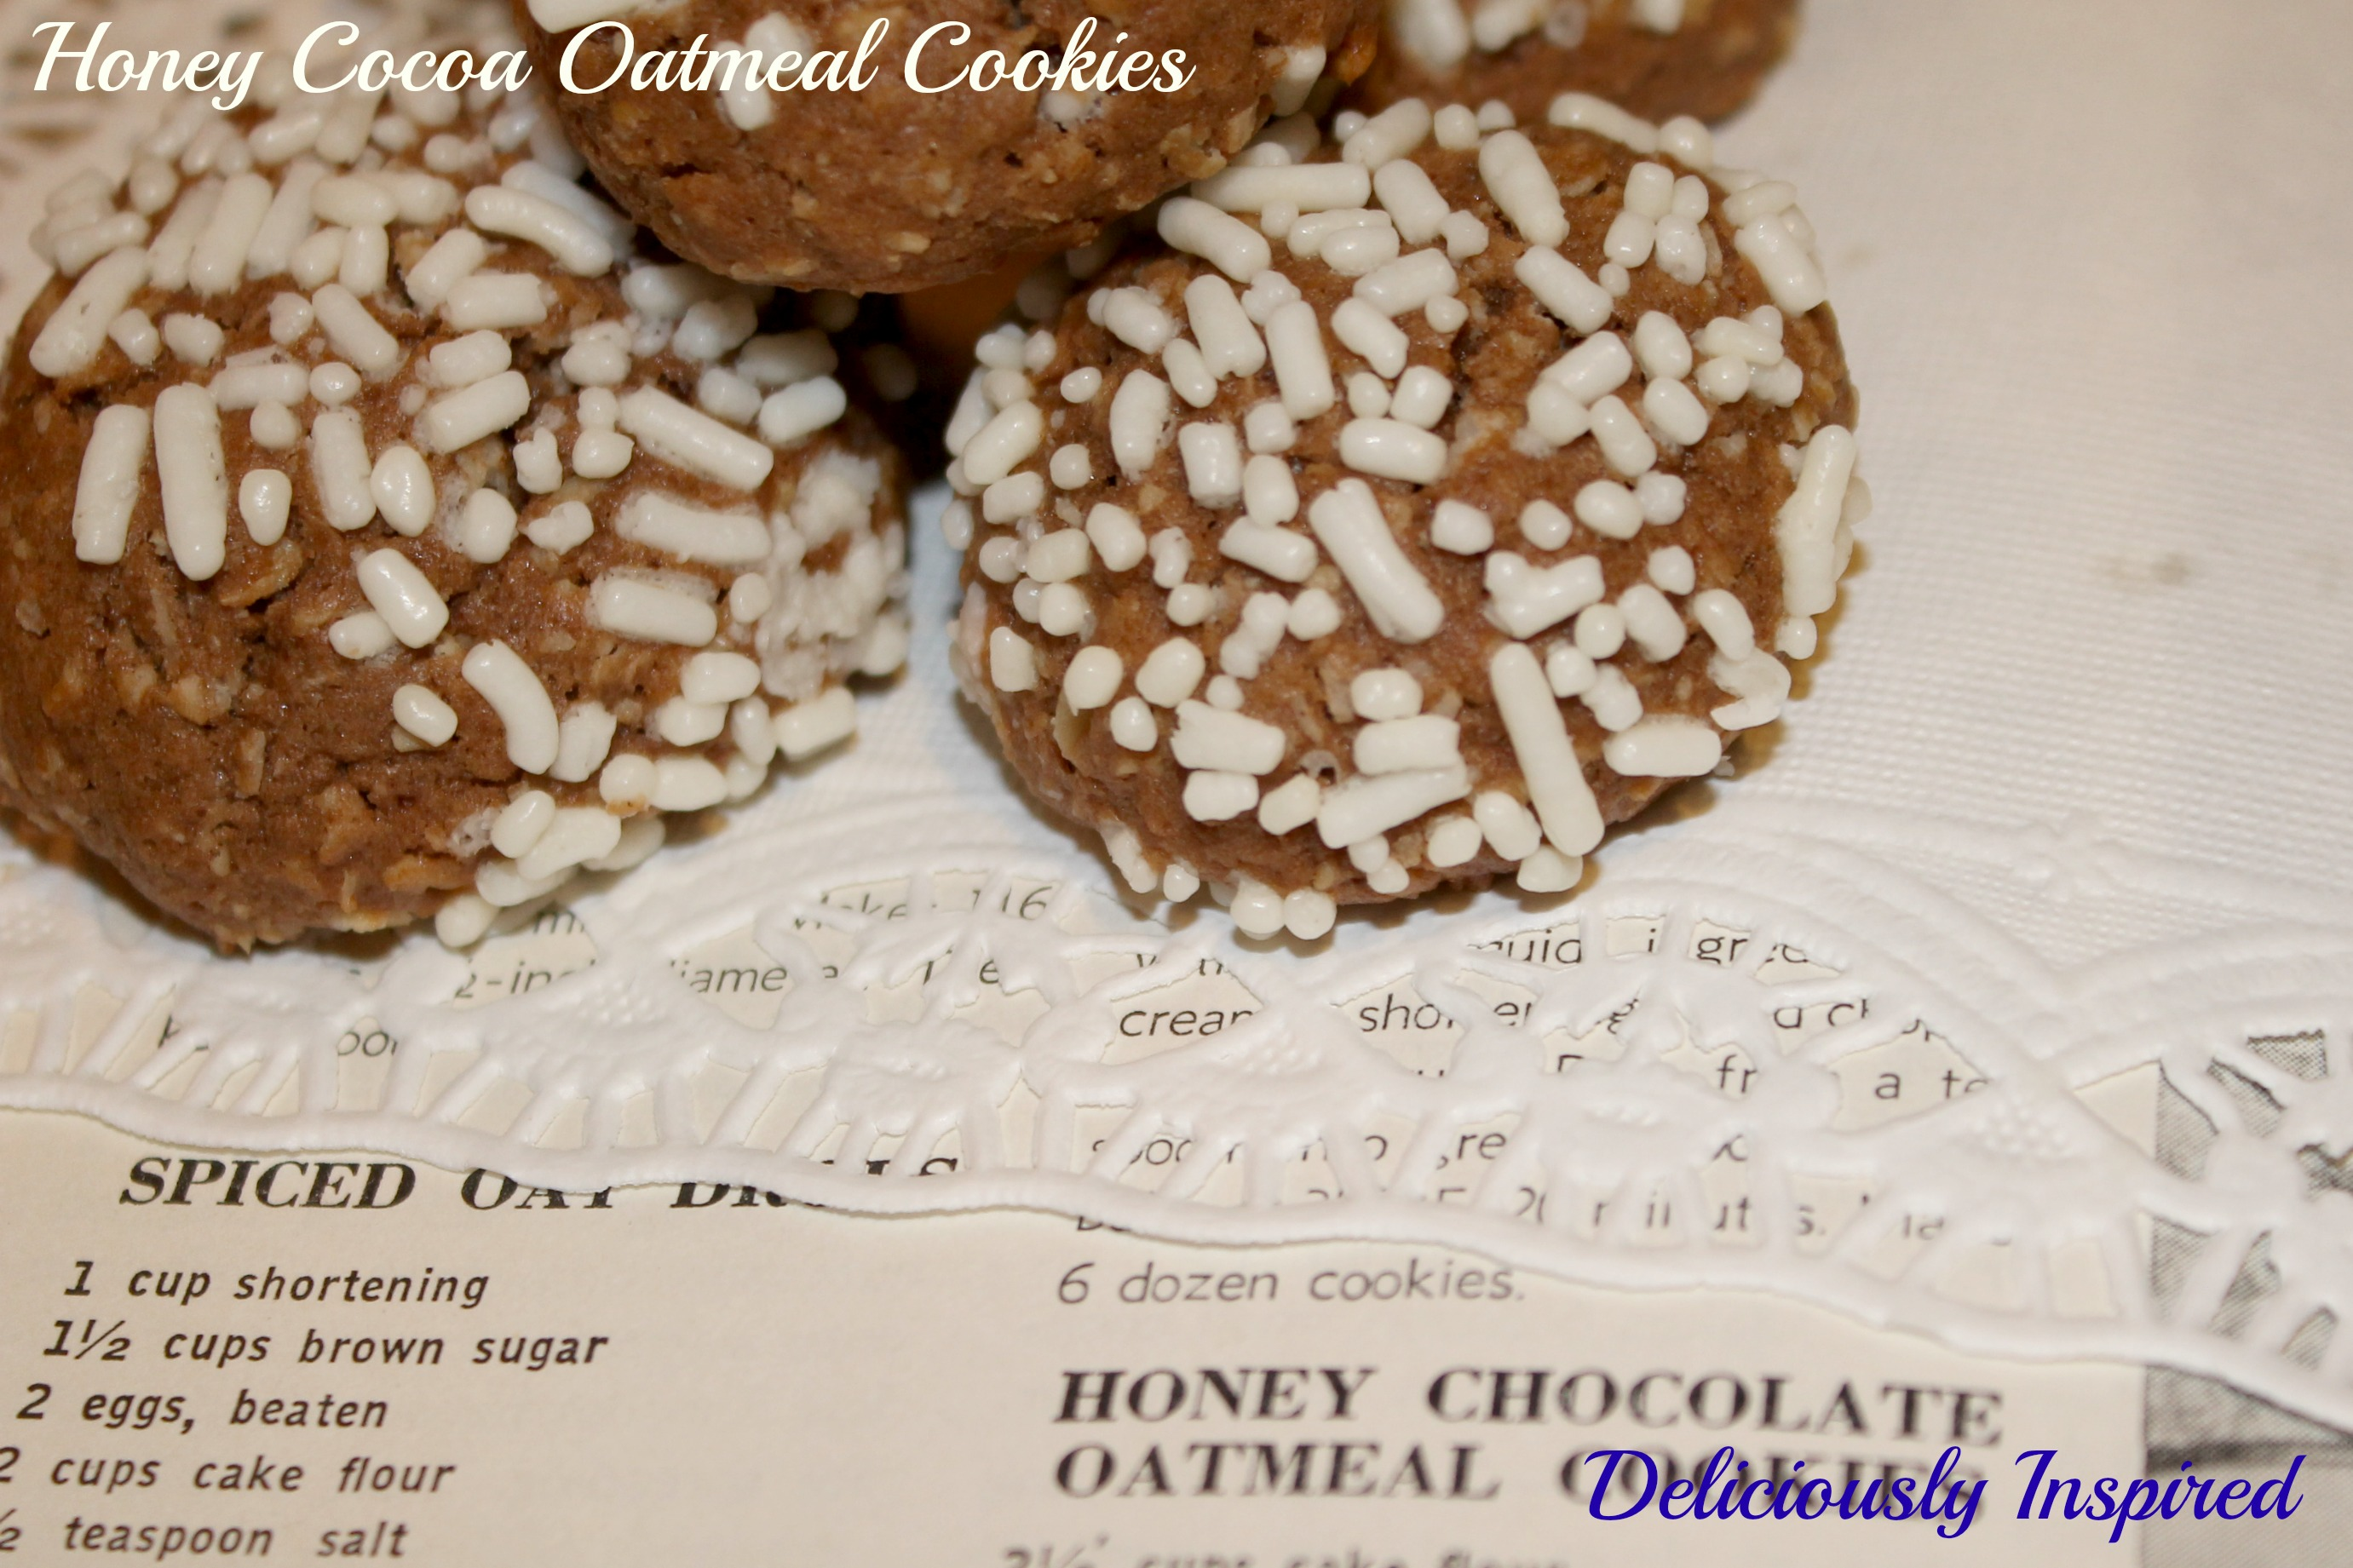 Honey Cocoa Oatmeal Cookies - recipe and cookbook